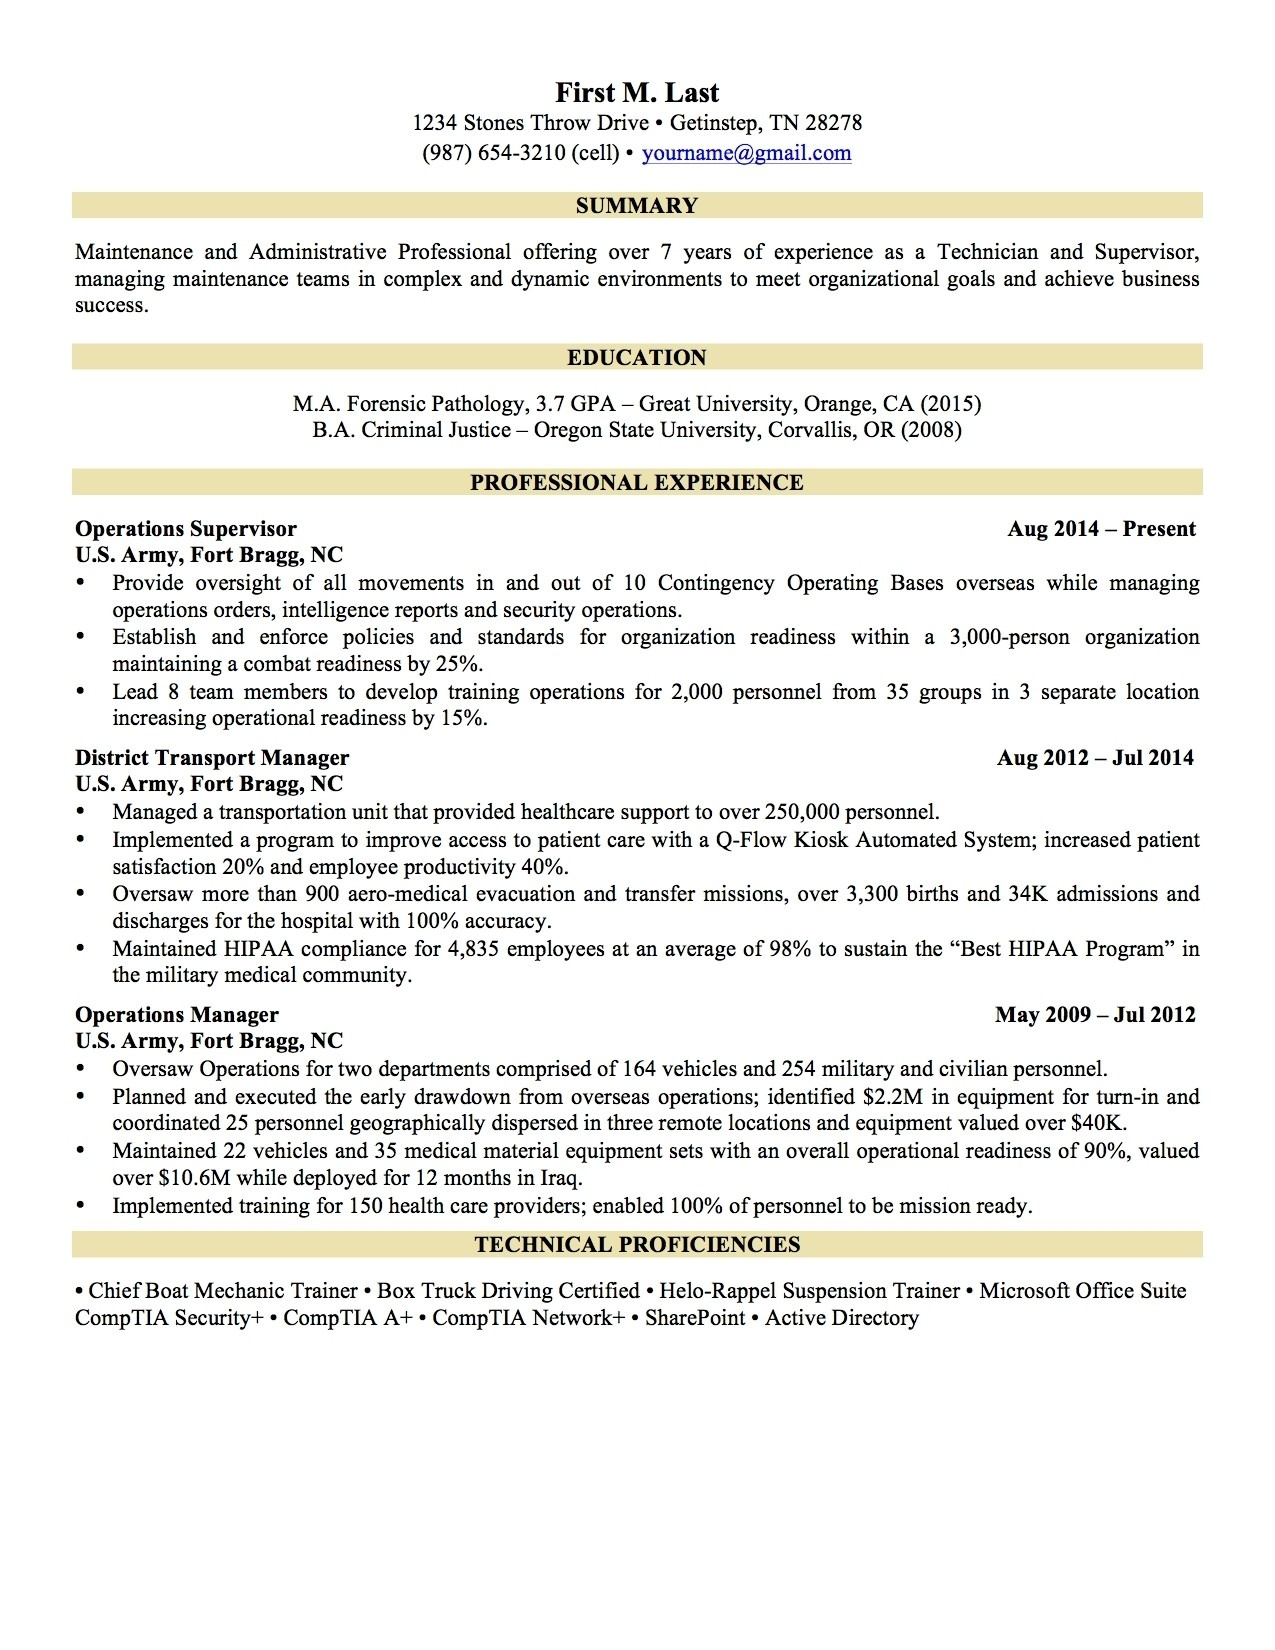 Professional Summary Resume Examples - Resume Examples Professional Experience Inspirational Fresh Grapher